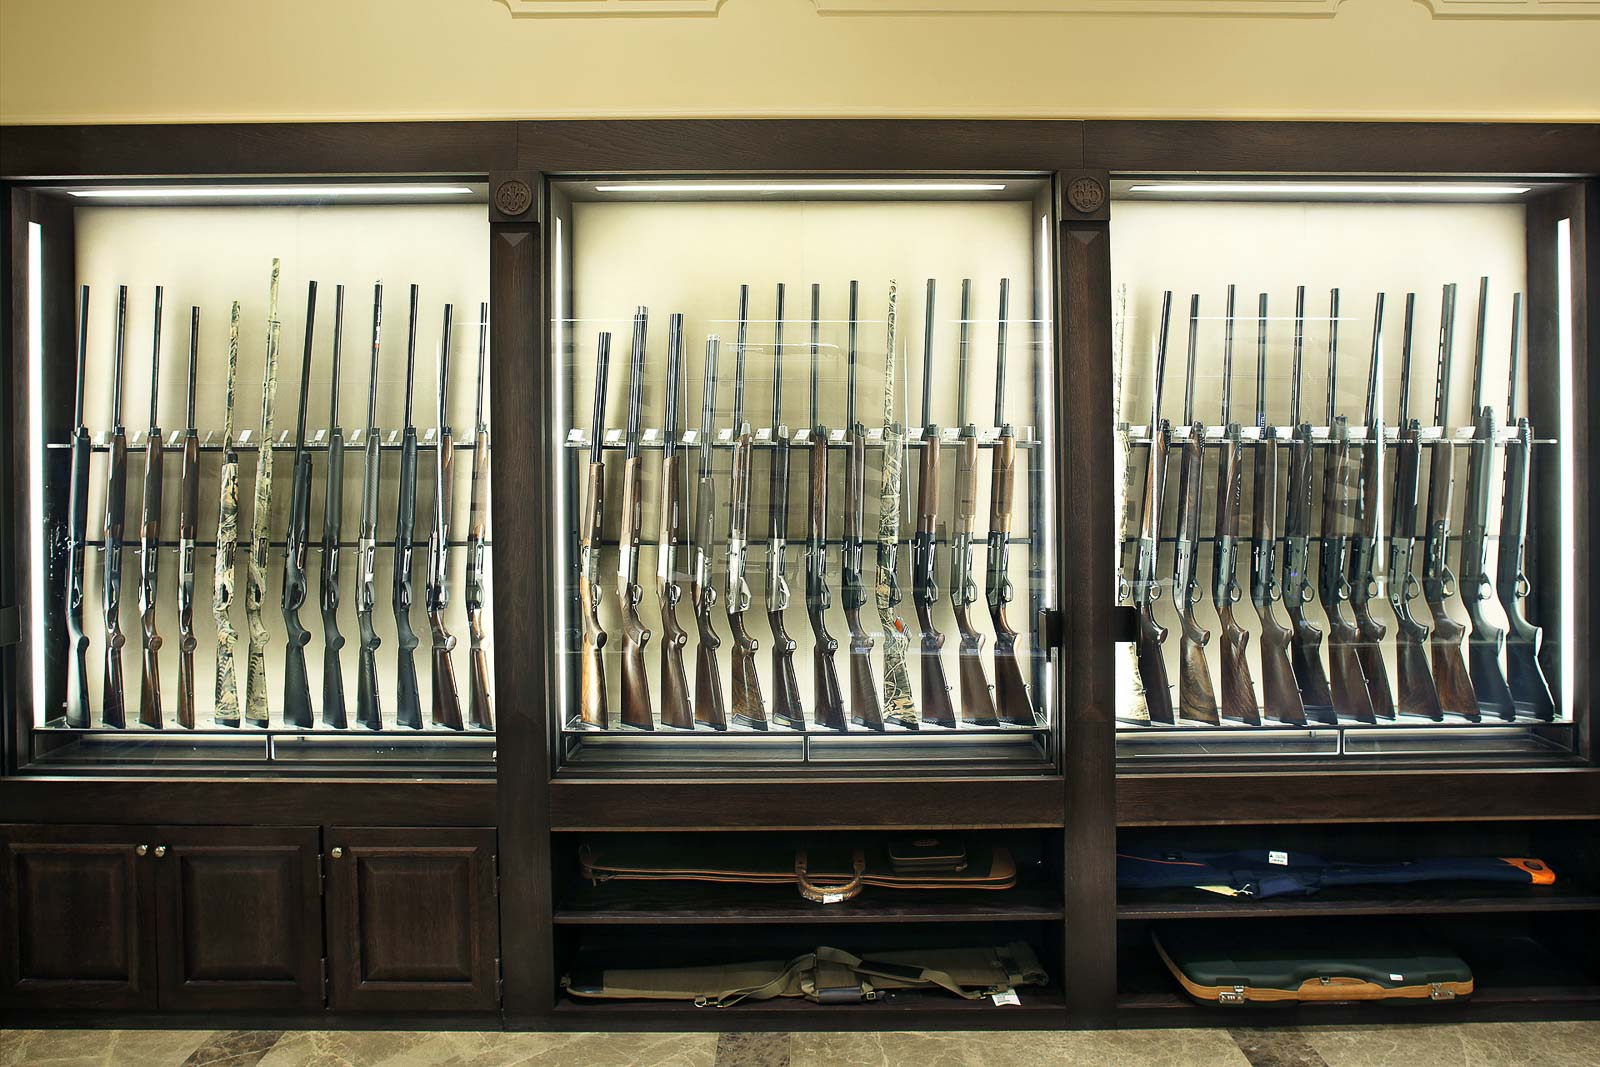 Displays for Beretta weapons